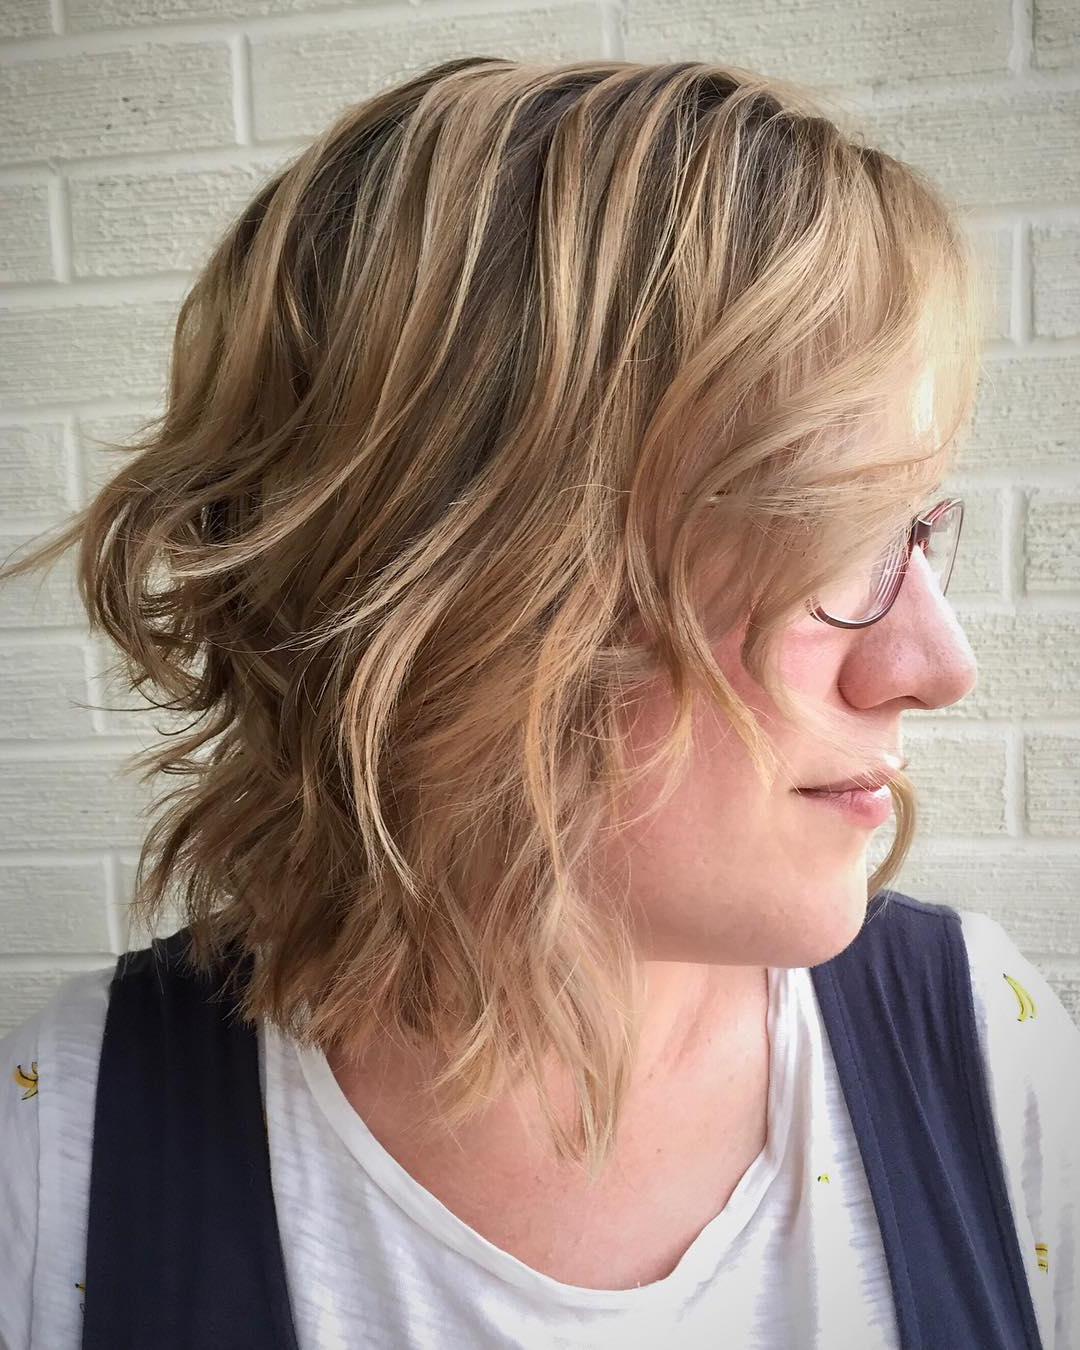 125 Coolest Shag Haircuts For All Ages – Prochronism For Famous Silver Shag Haircuts With Feathered Layers (Gallery 14 of 20)